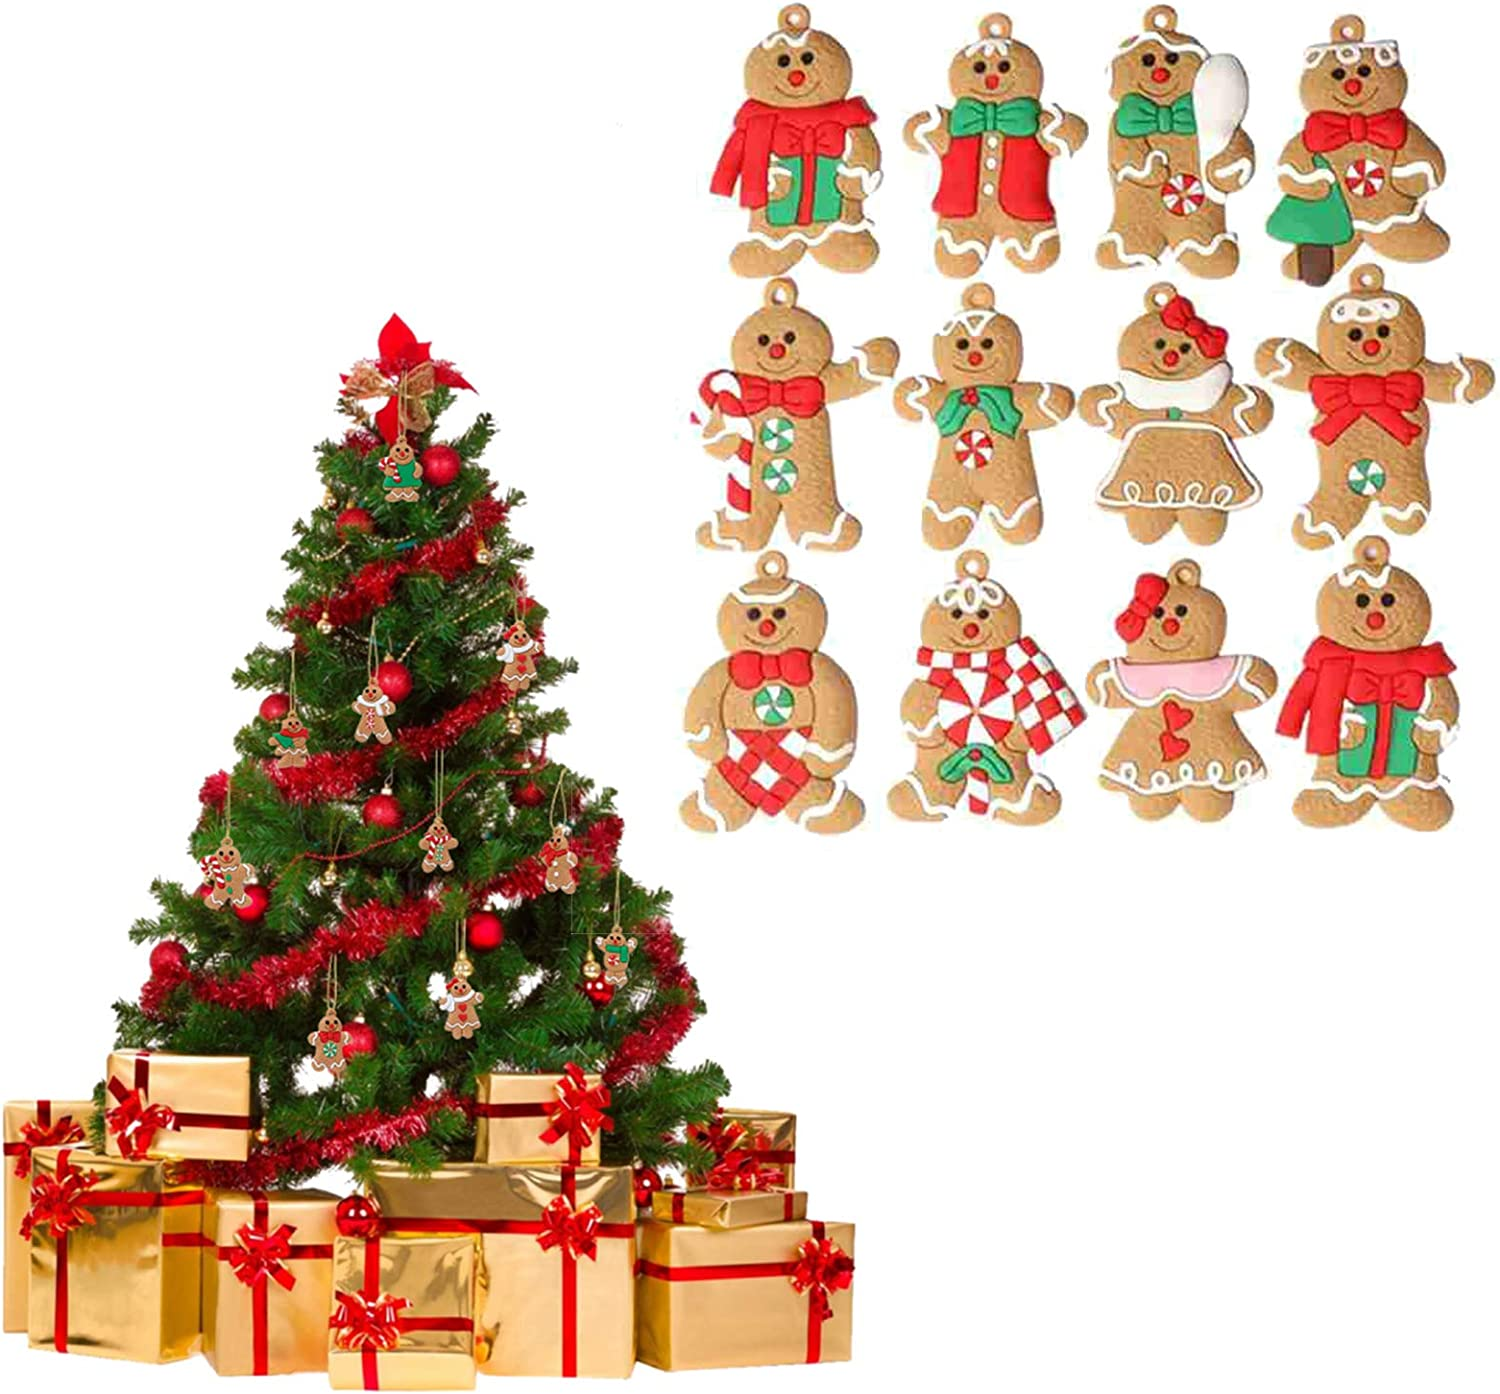 17PCS Christmas Ornaments Gingerbread Man/Snowflake/Bird/Jingle Bell Pendants,Christmas Baubles Balls Christmas Tree Decorations for Home Party Supplies